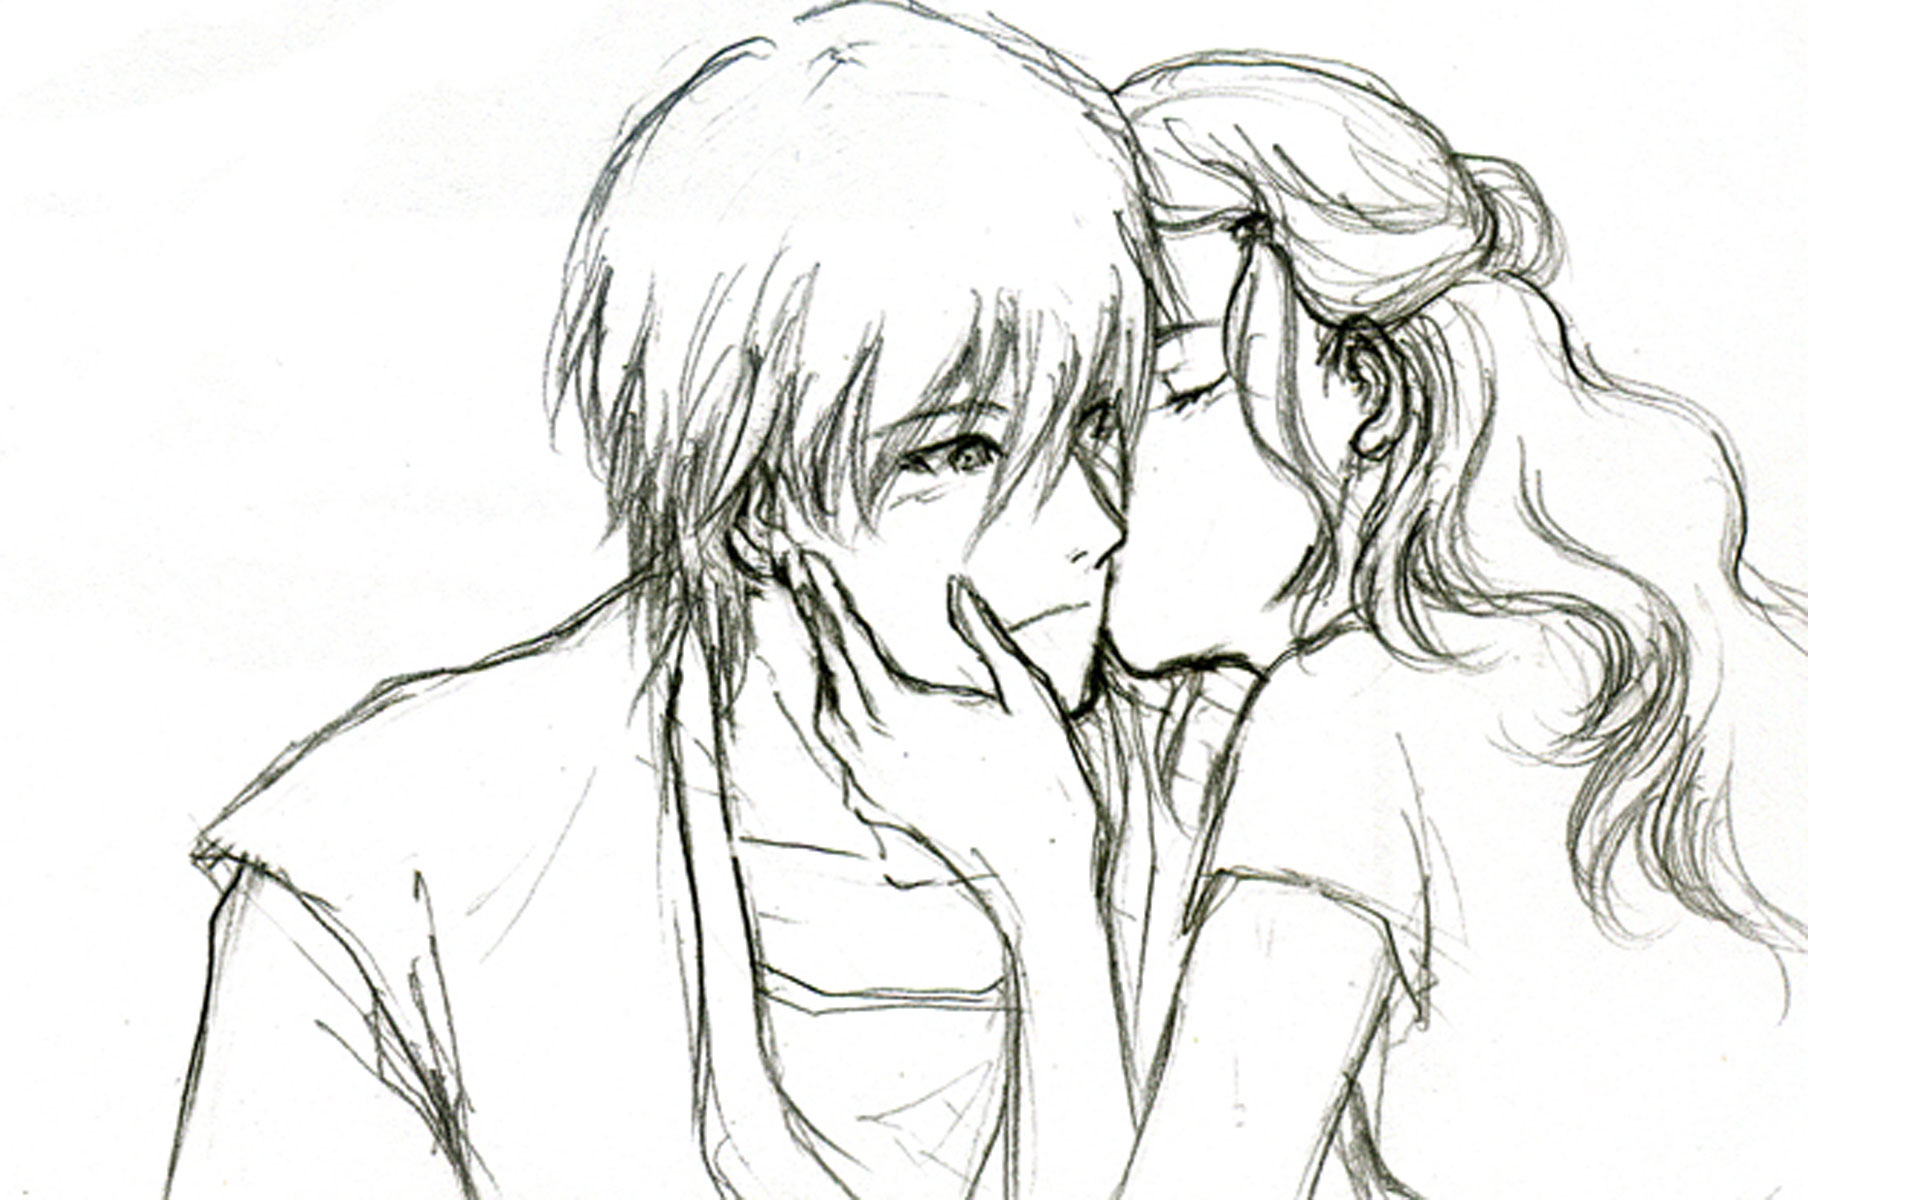 1920x1200 Pencil Sketch Of Boy And Girl Breakup Crying Drawing Of Sketch